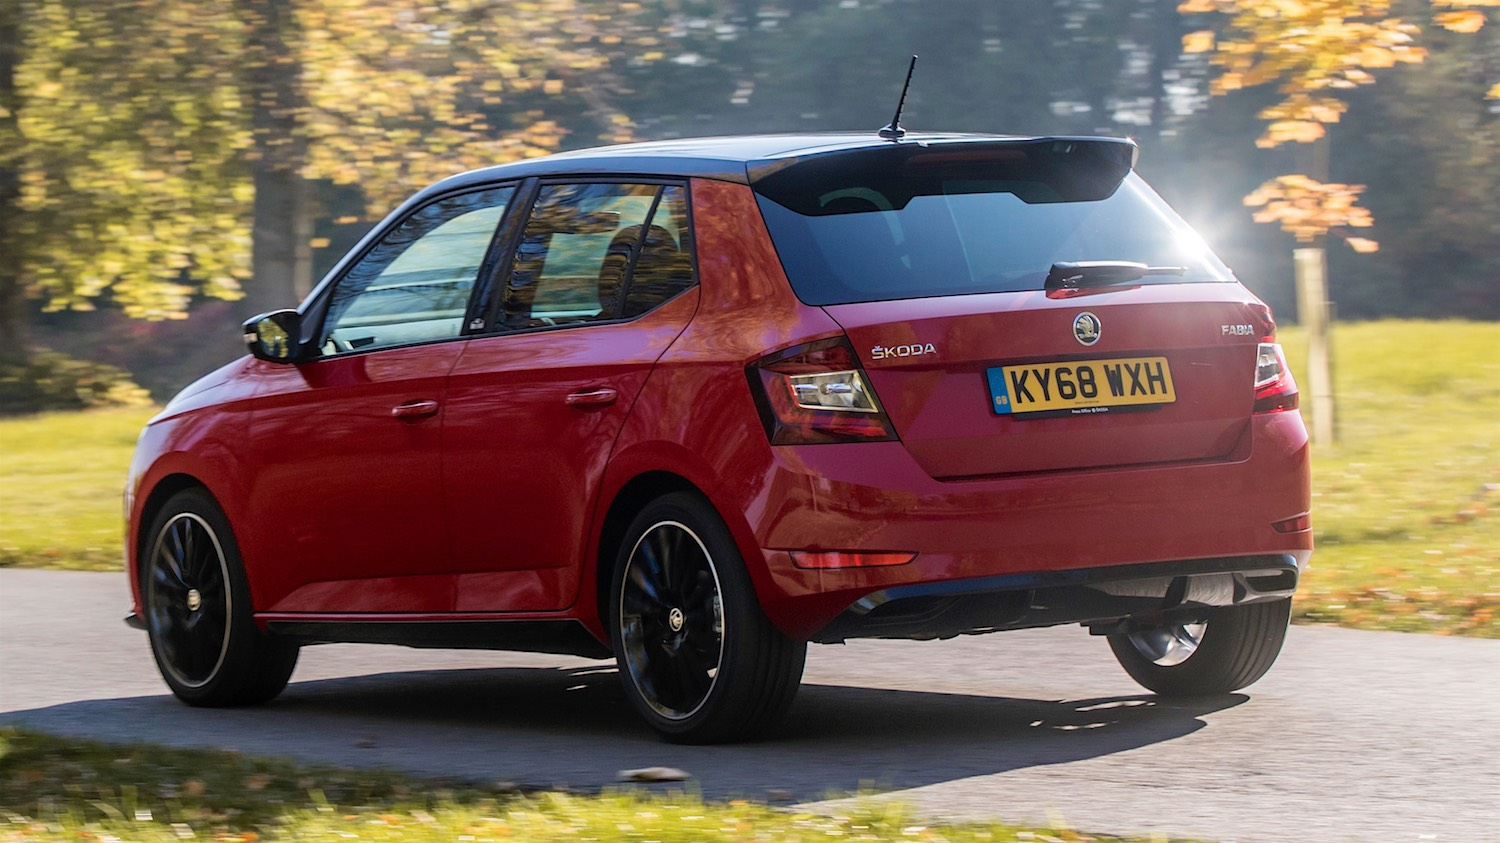 Tim Barnes Clay reviews the upated Skoda Fabia Monte Carlo for drive 5